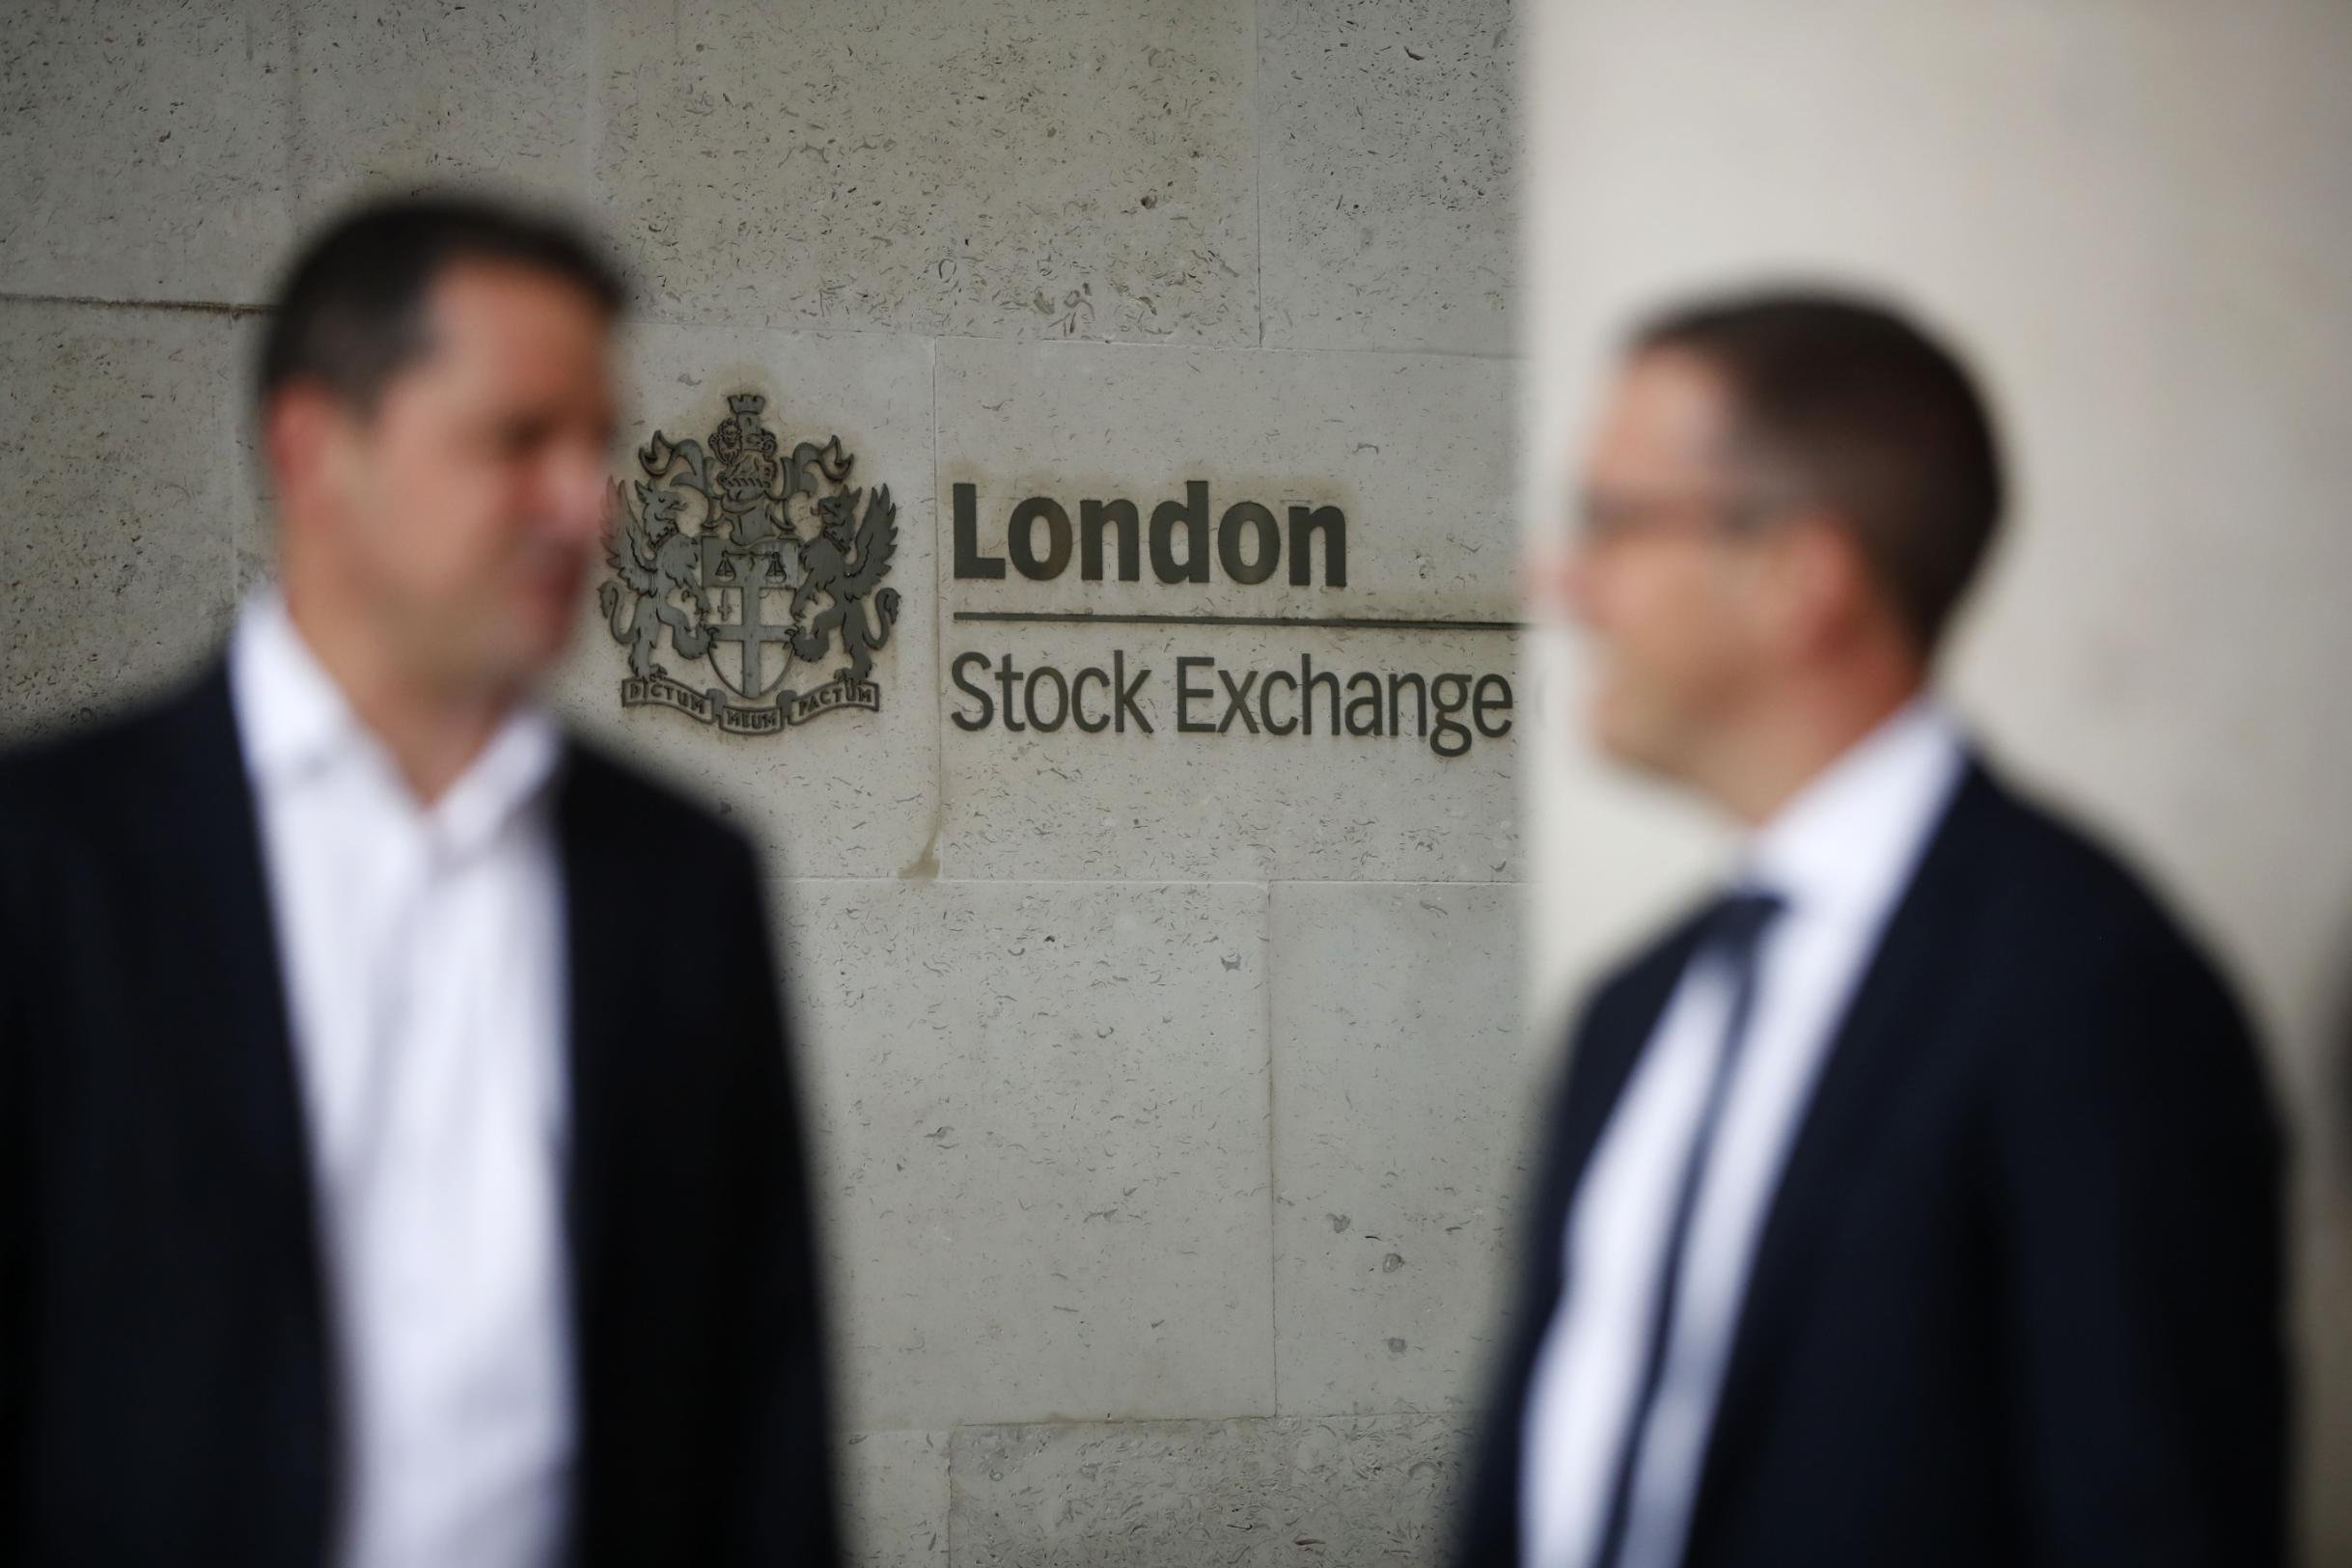 London Stock Exchange suffers 90 minute outage